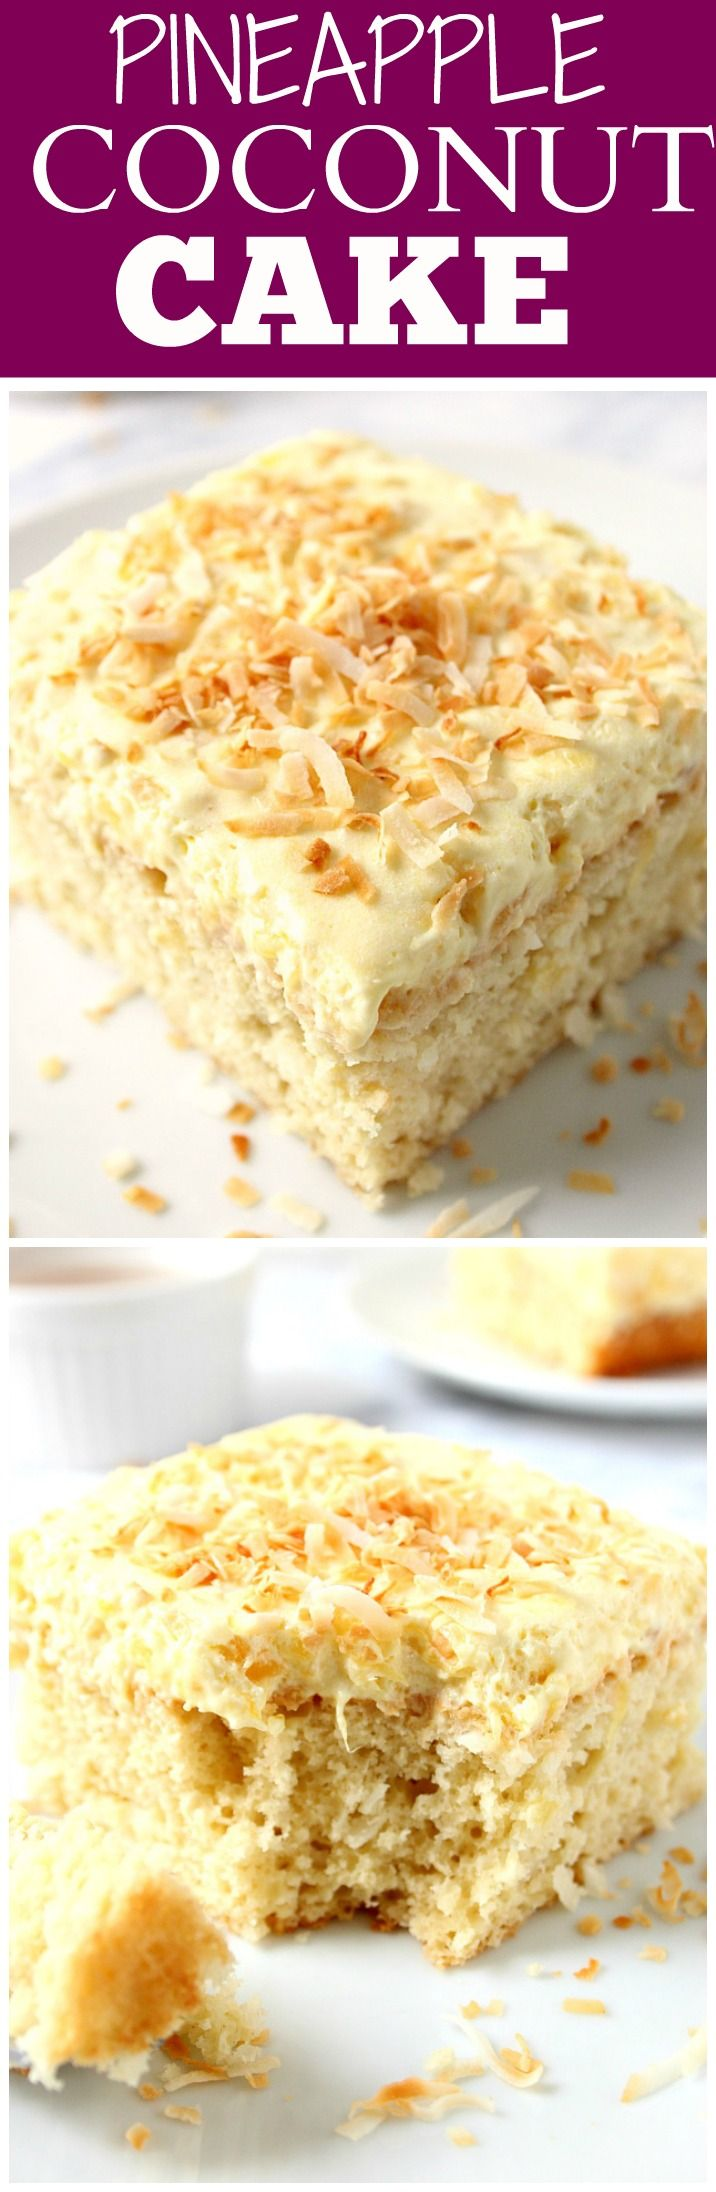 Coconut Pineapple Cake Recipe - sweet and delicious coconut cake with light and fluffy whipped pineapple frosting! Perfect Summer dessert!